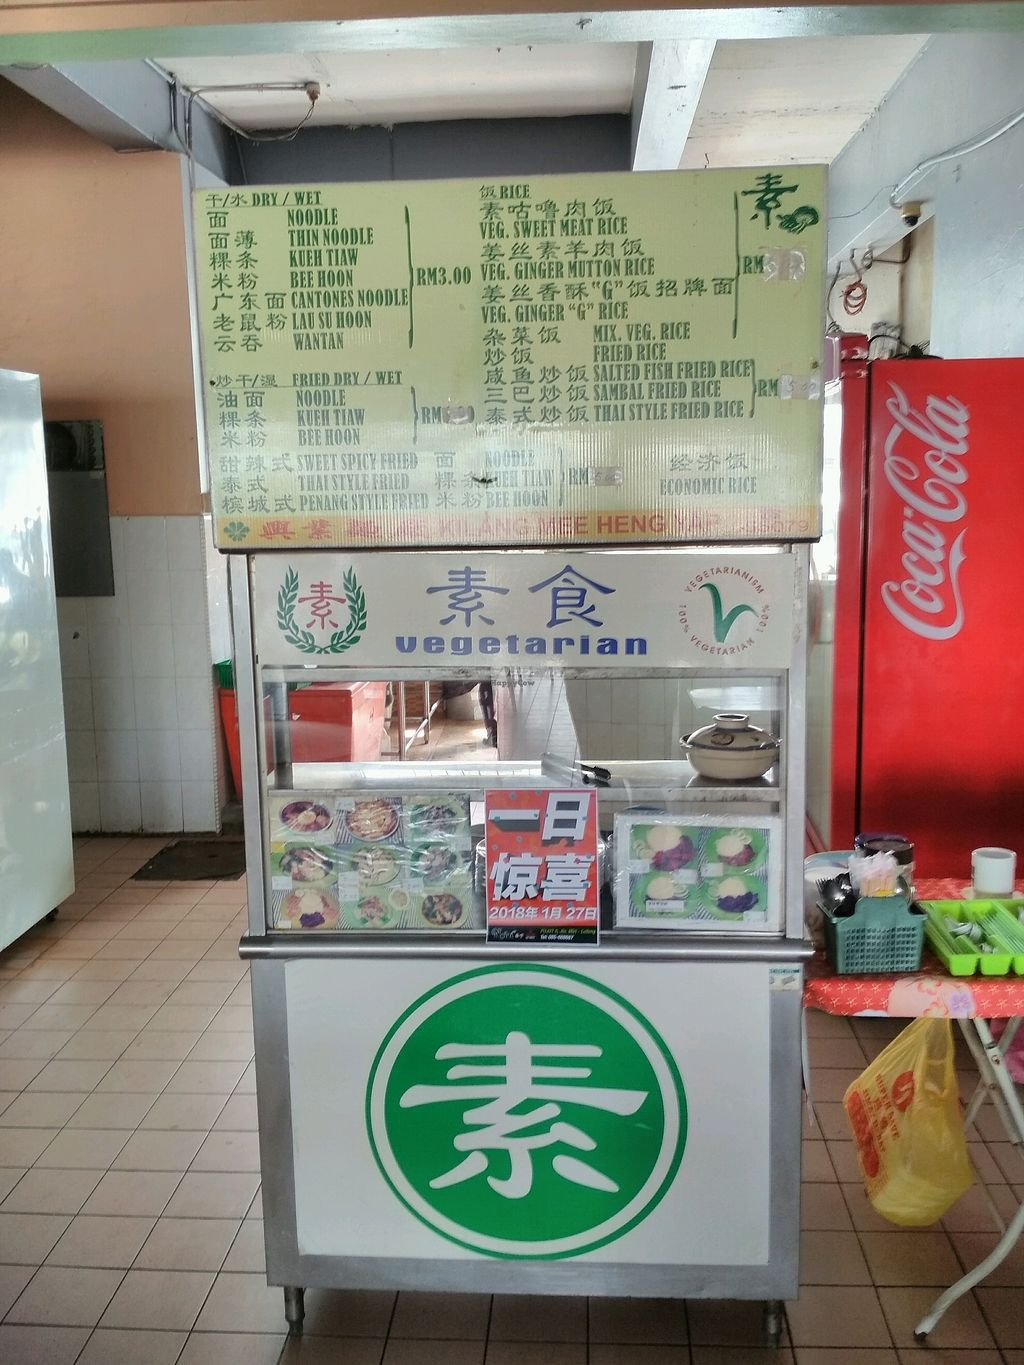 "Photo of Pelita Foodcourt Vegetarian Stall  by <a href=""/members/profile/grasseater76"">grasseater76</a> <br/>the stall  <br/> January 23, 2018  - <a href='/contact/abuse/image/110218/350226'>Report</a>"